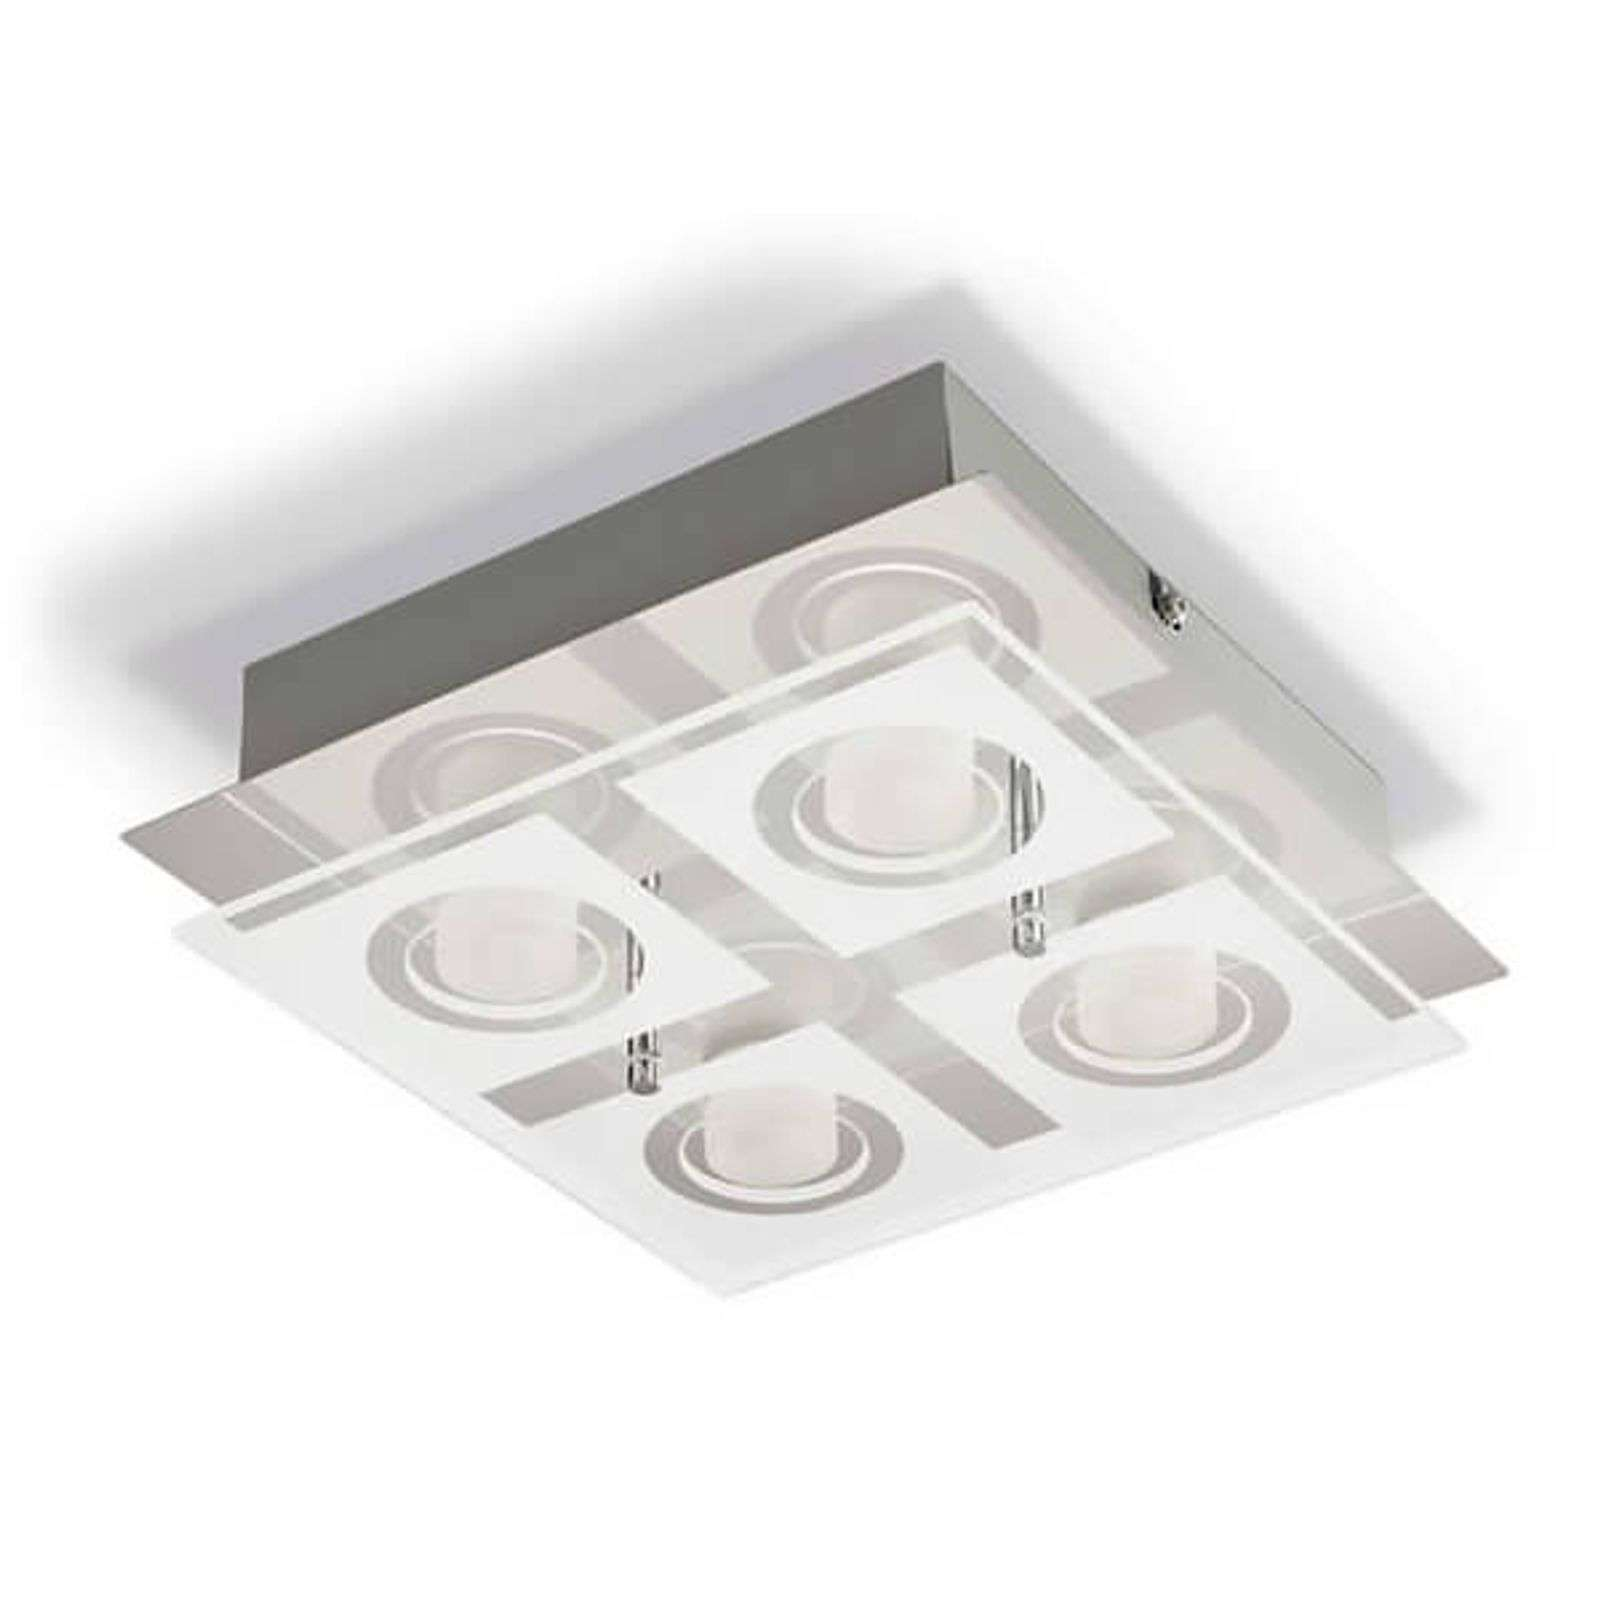 Plafón LED de 4 brazos Polygon